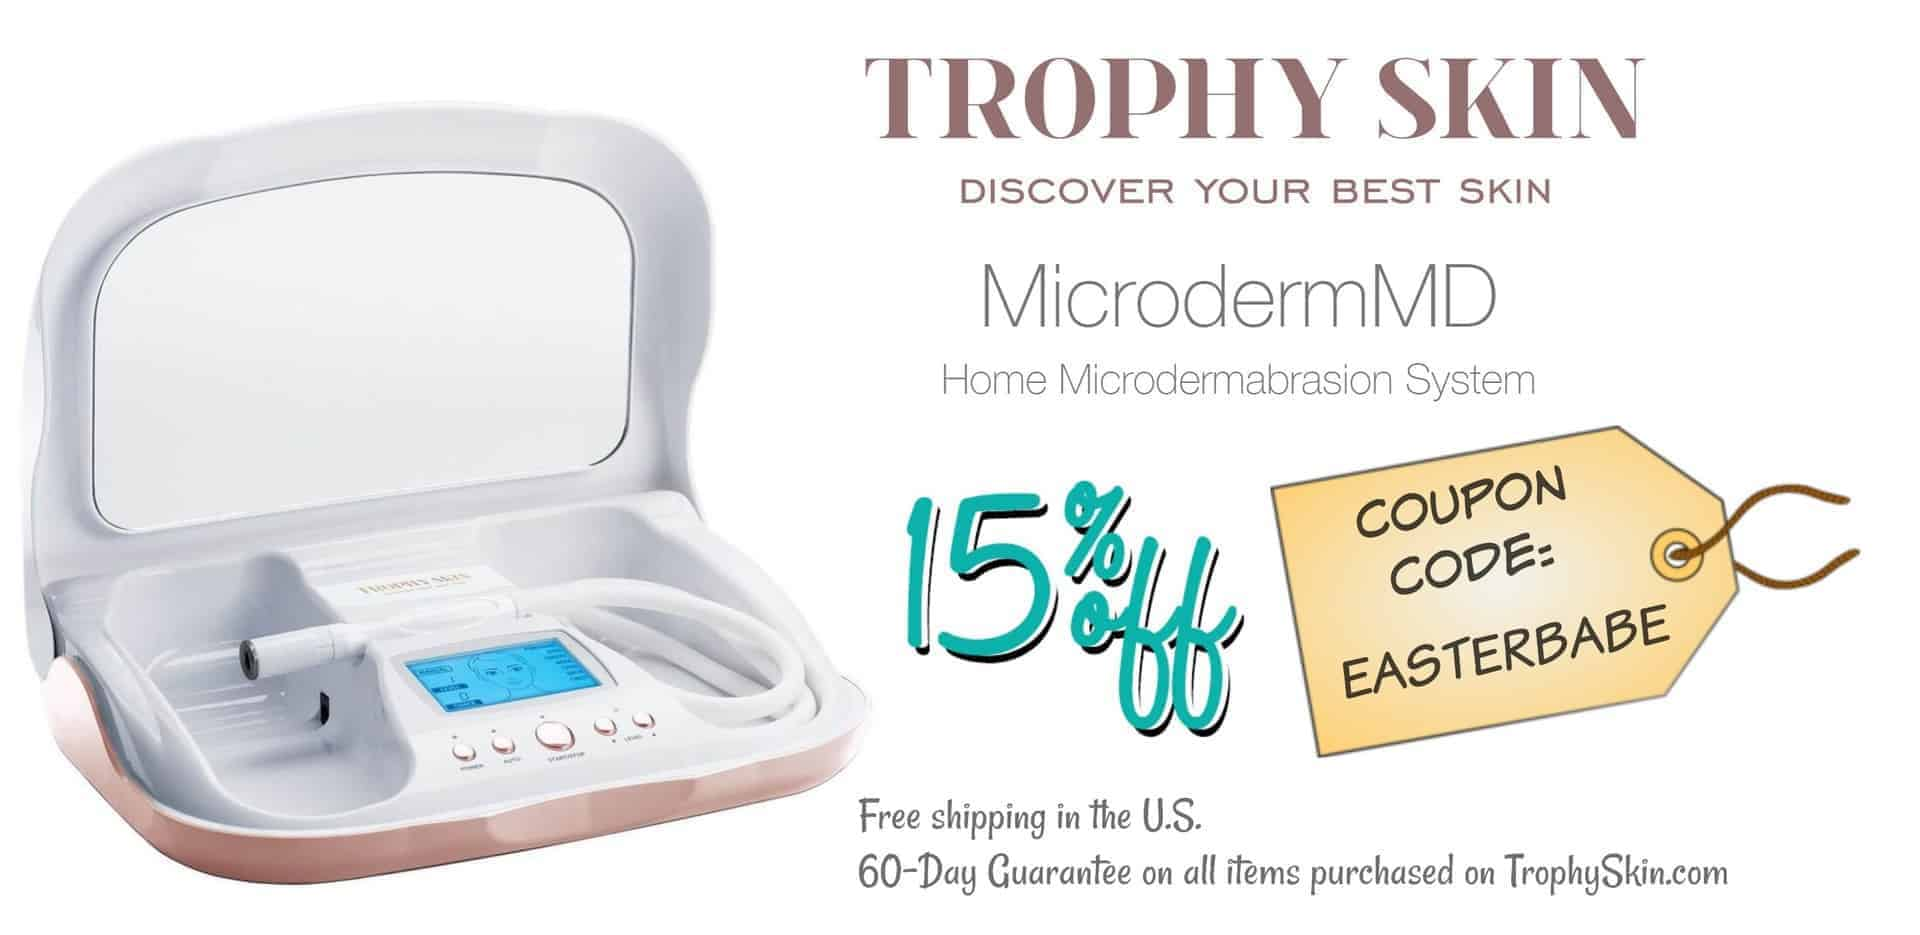 Trophy Skin Microdermabrasion MicrodermMD System Discount Coupon Codes